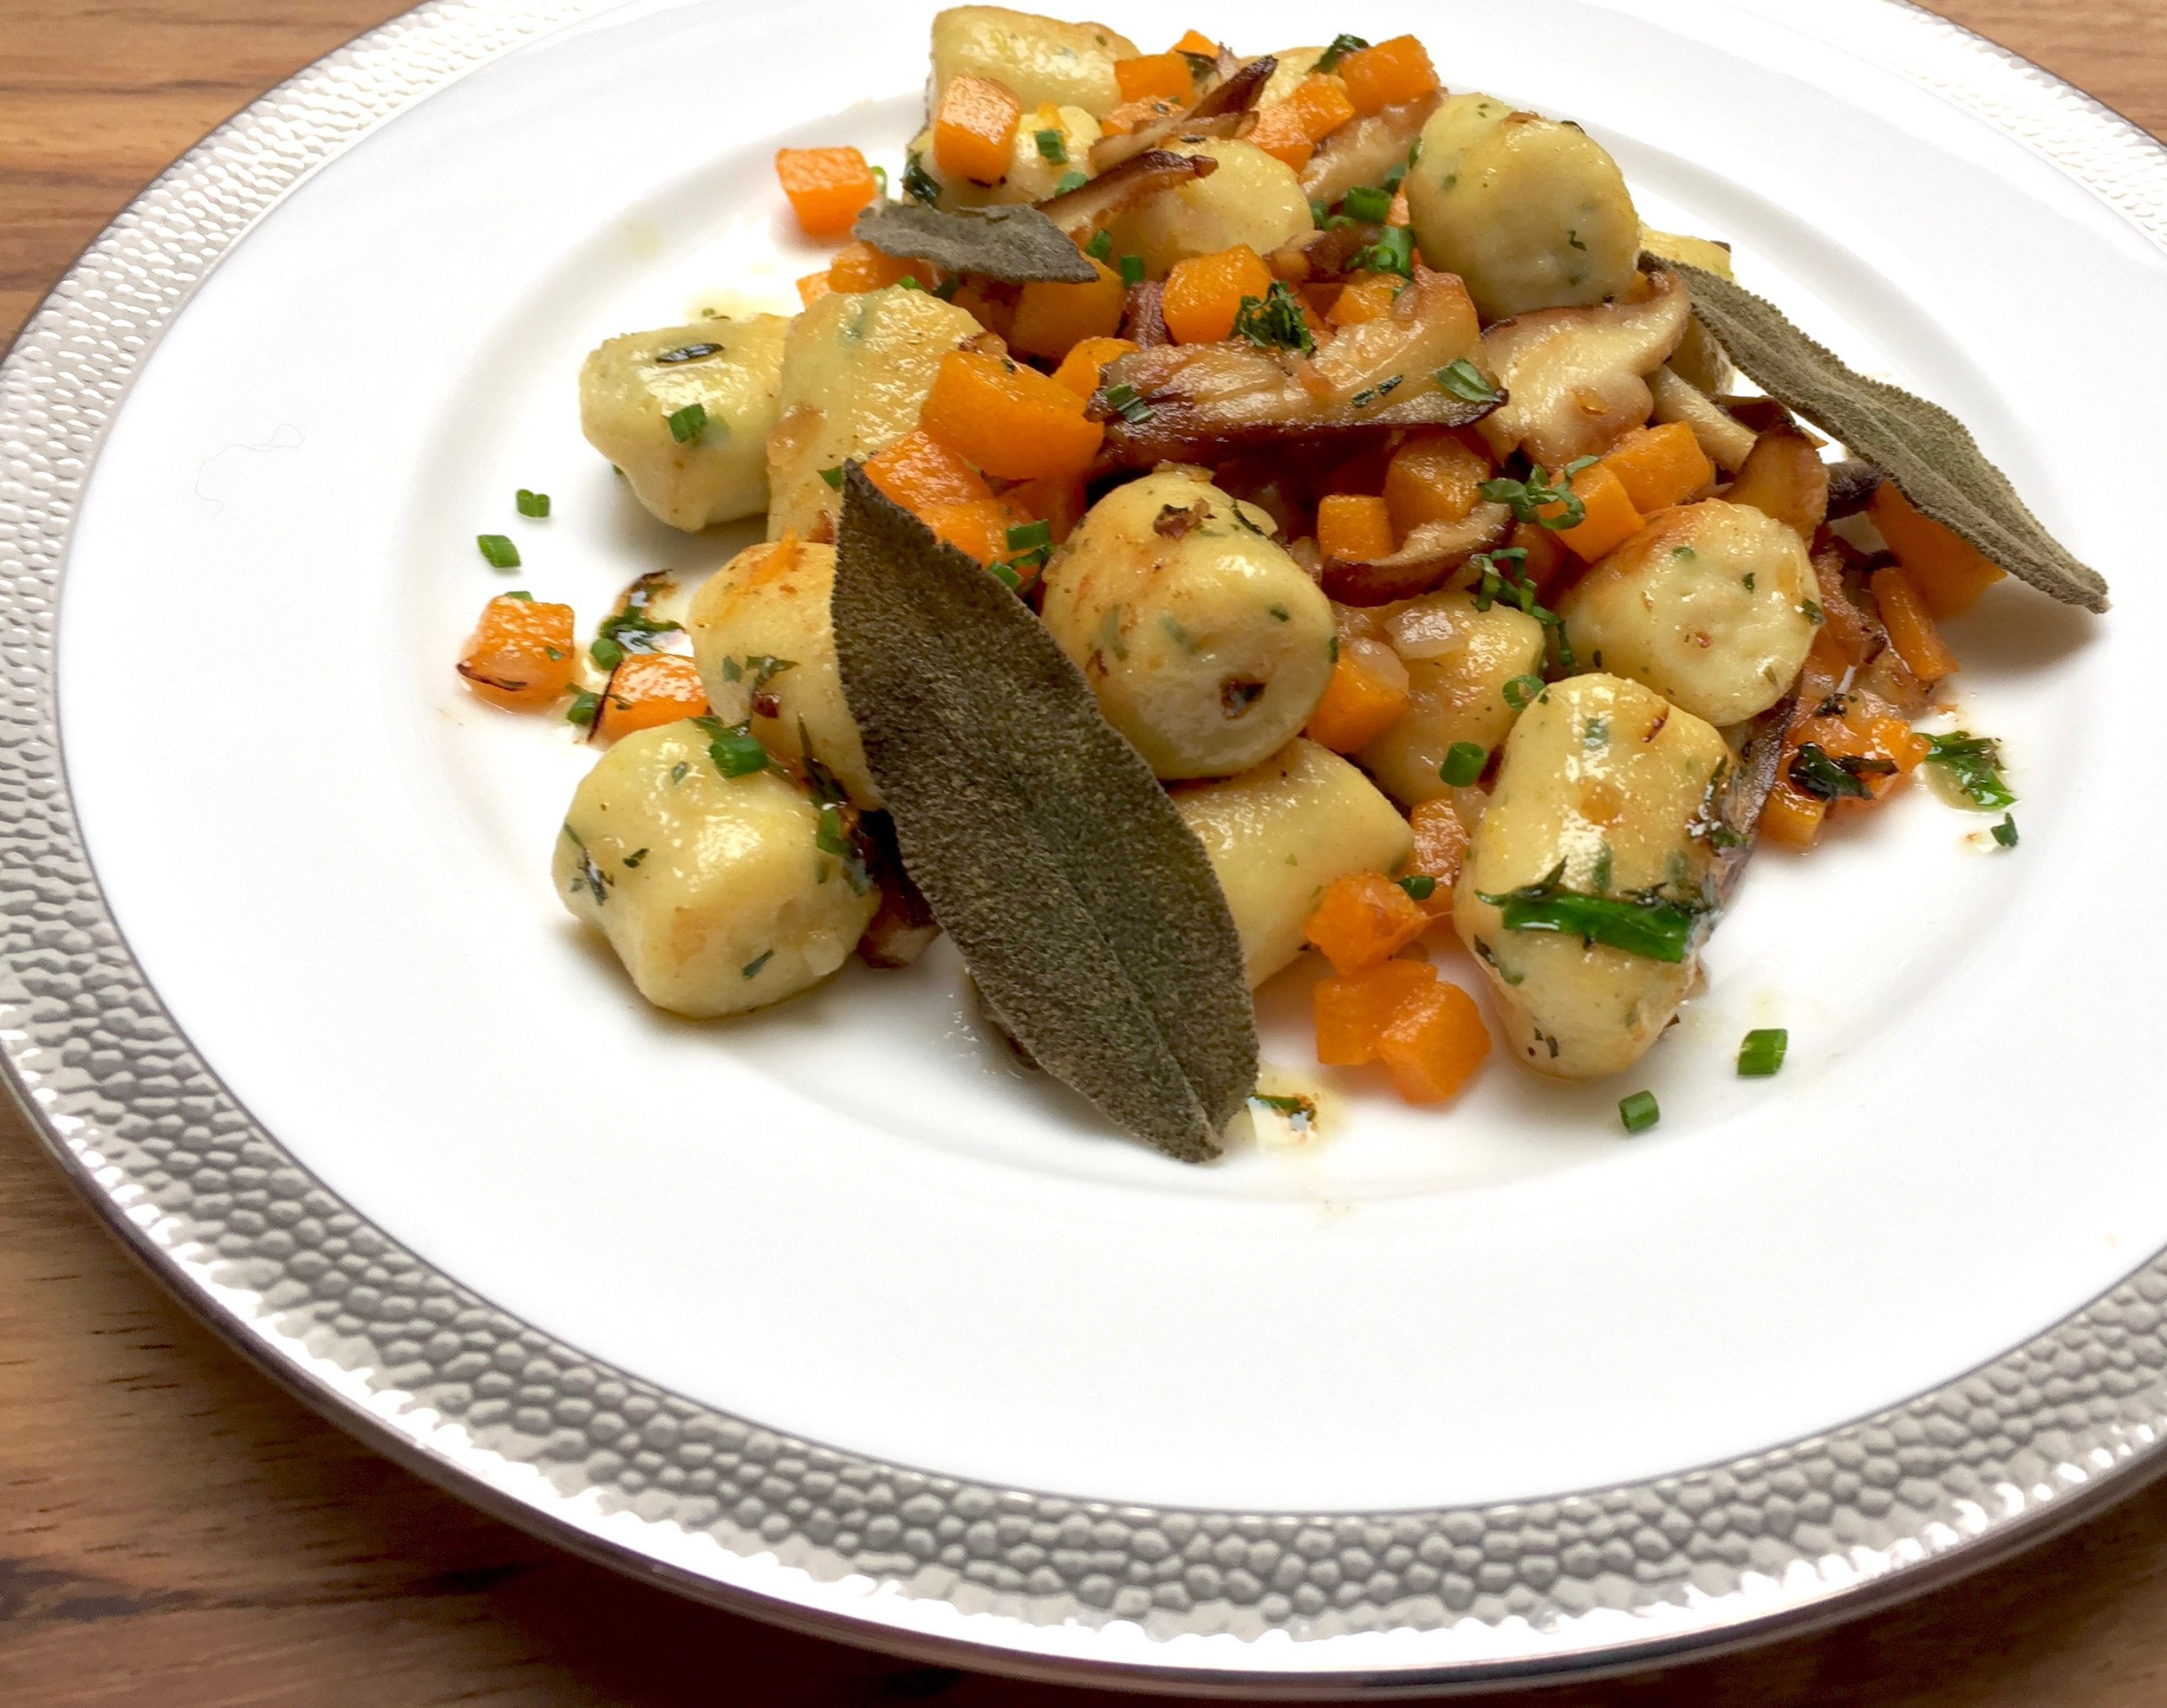 A mouthwatering plate of herbed cheese gnocchi!